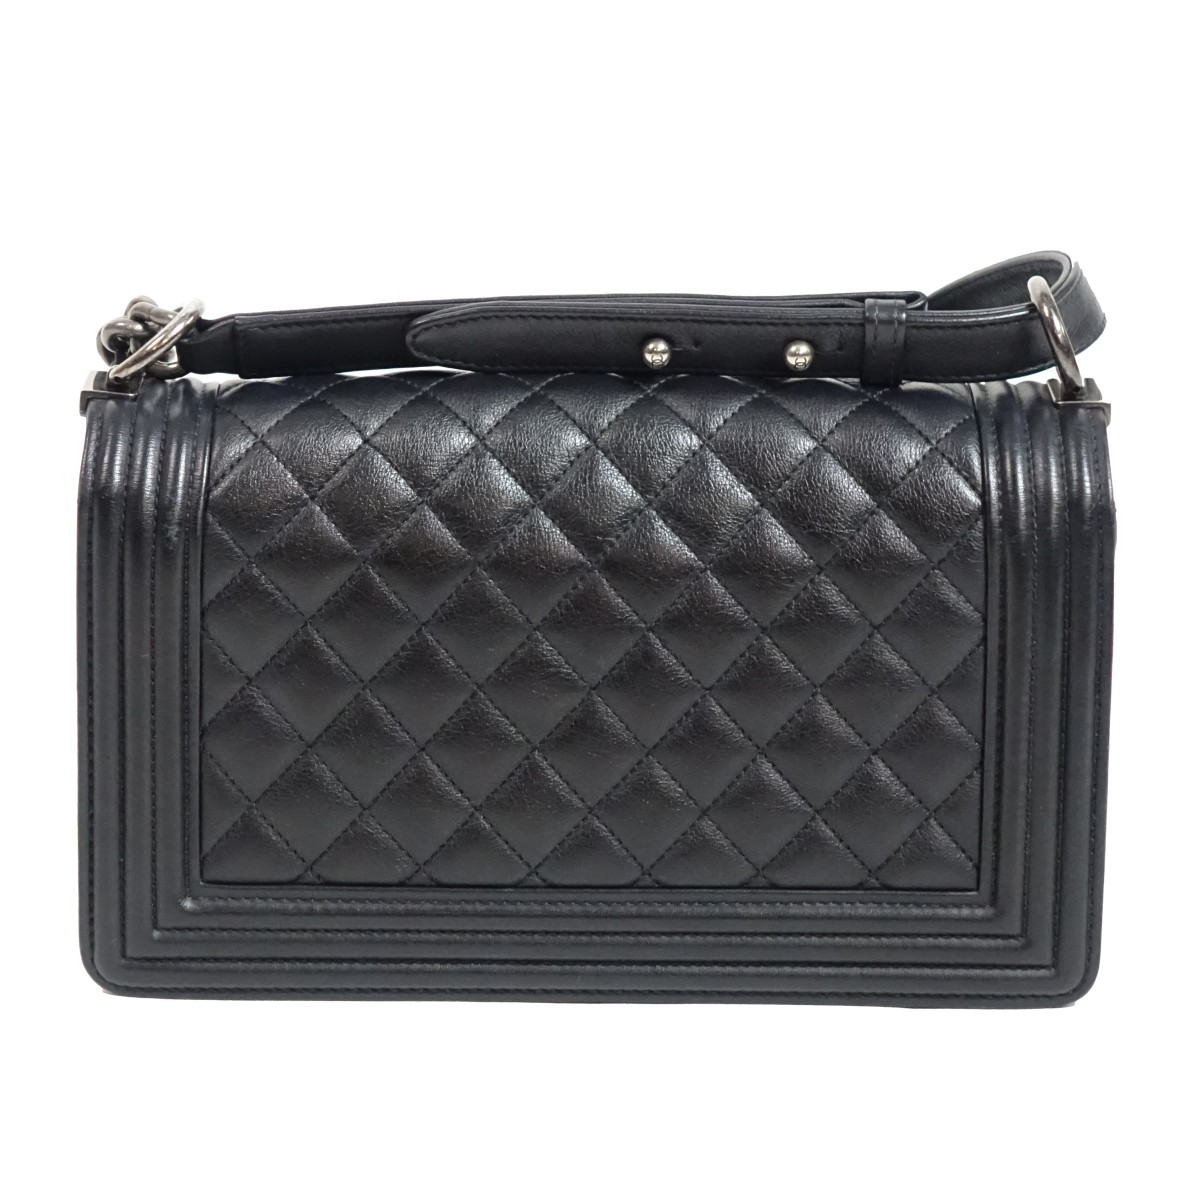 Chanel Black Lambskin Boy Bag Handbag